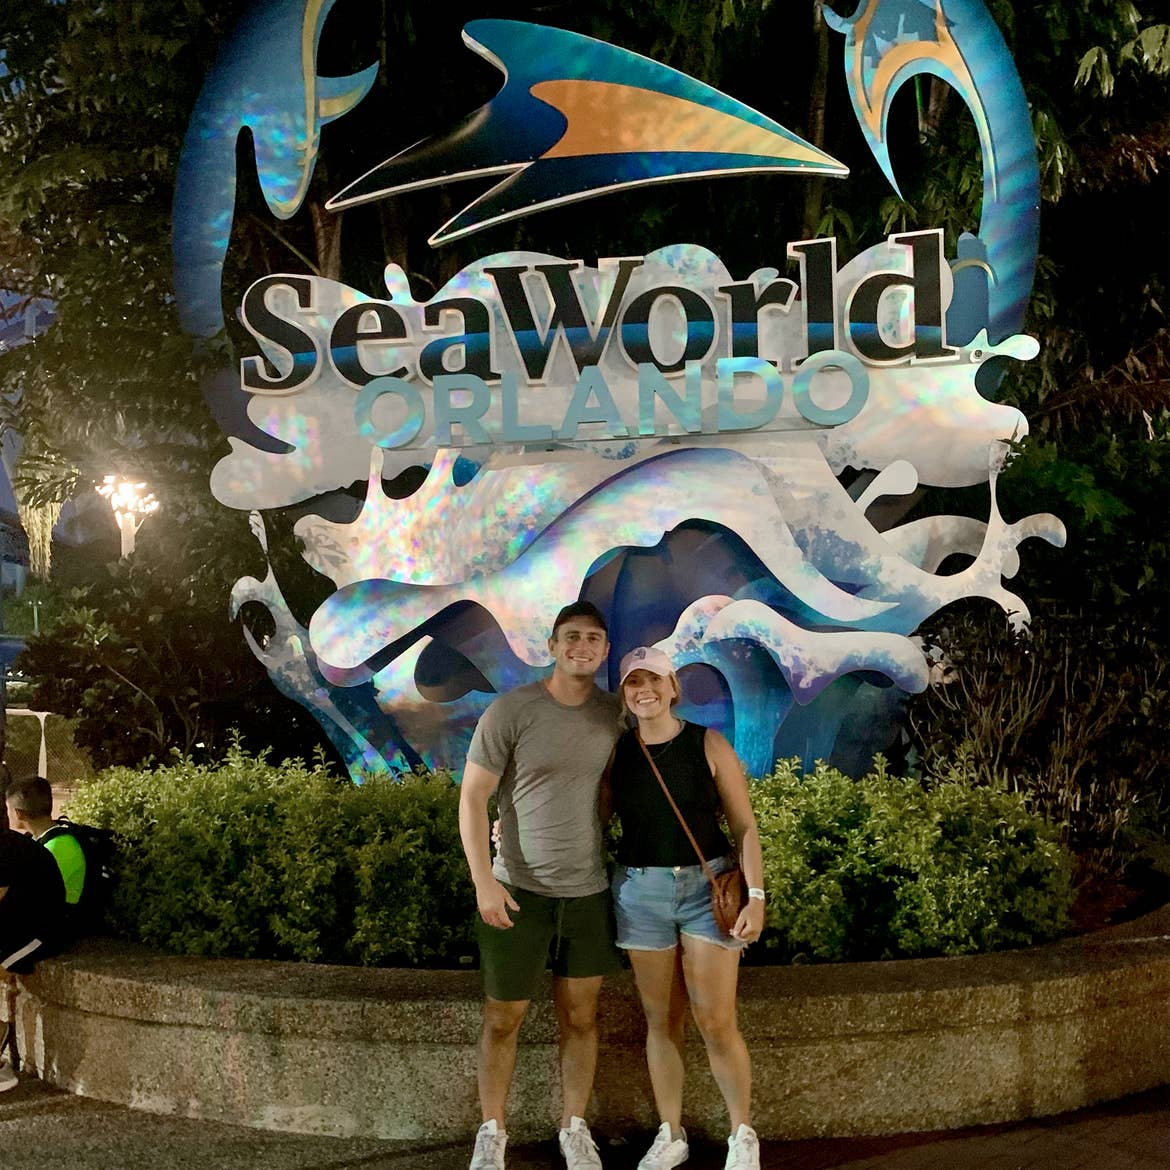 A Caucasian male wearing a grey t-shirt, black cap (right) and a Caucasian female wearing a pink baseball cap and black tank top stand near the SeaWorld Orlando sign icon.